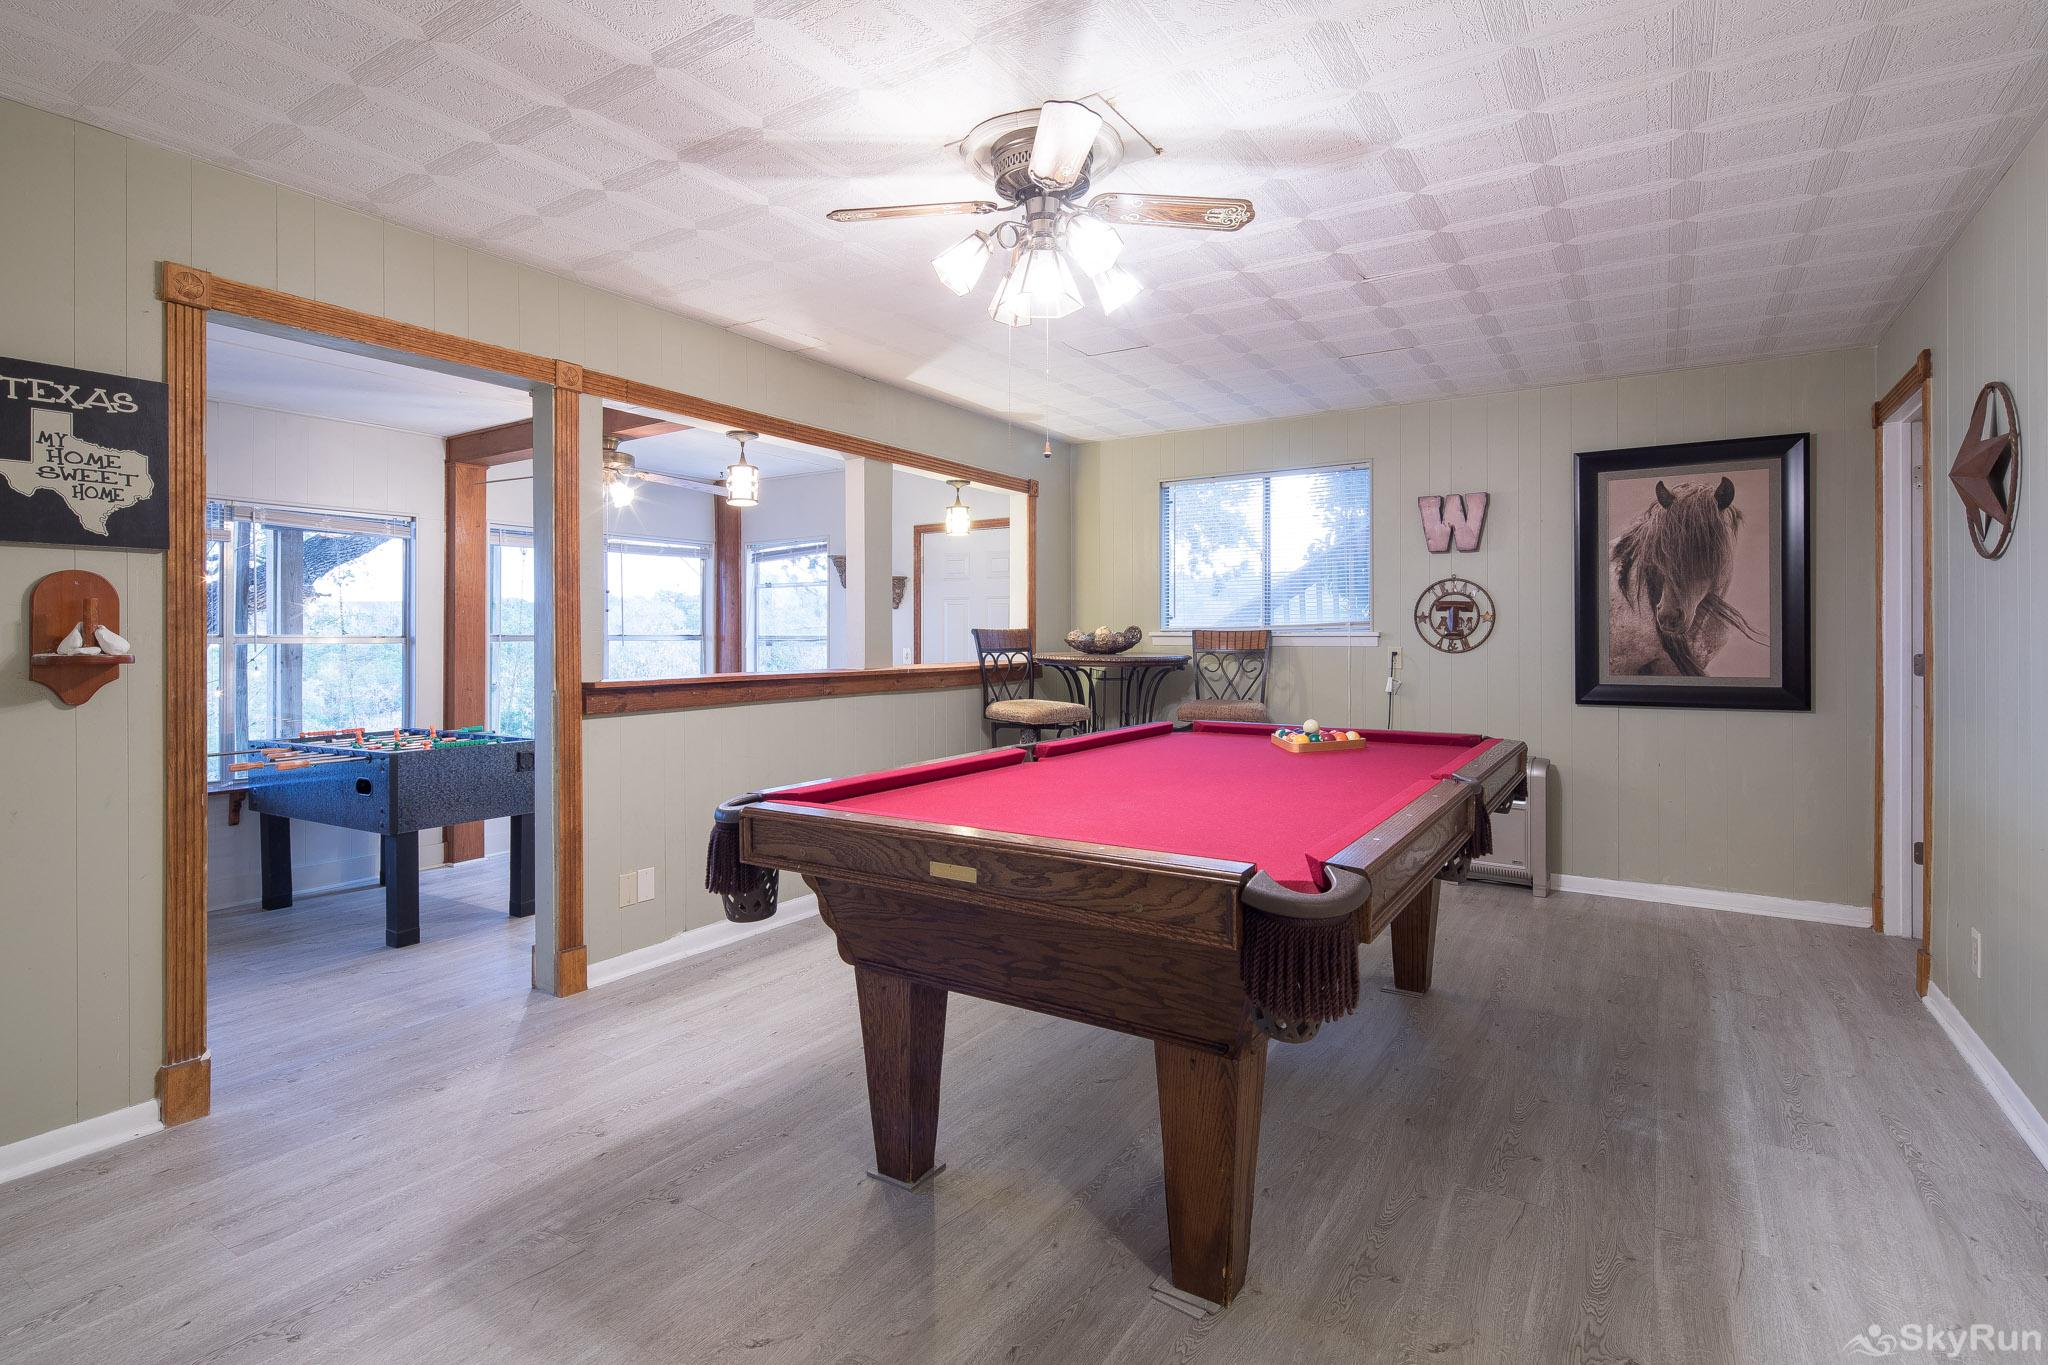 TEXAS ROSE LODGE Full size pool table downstairs